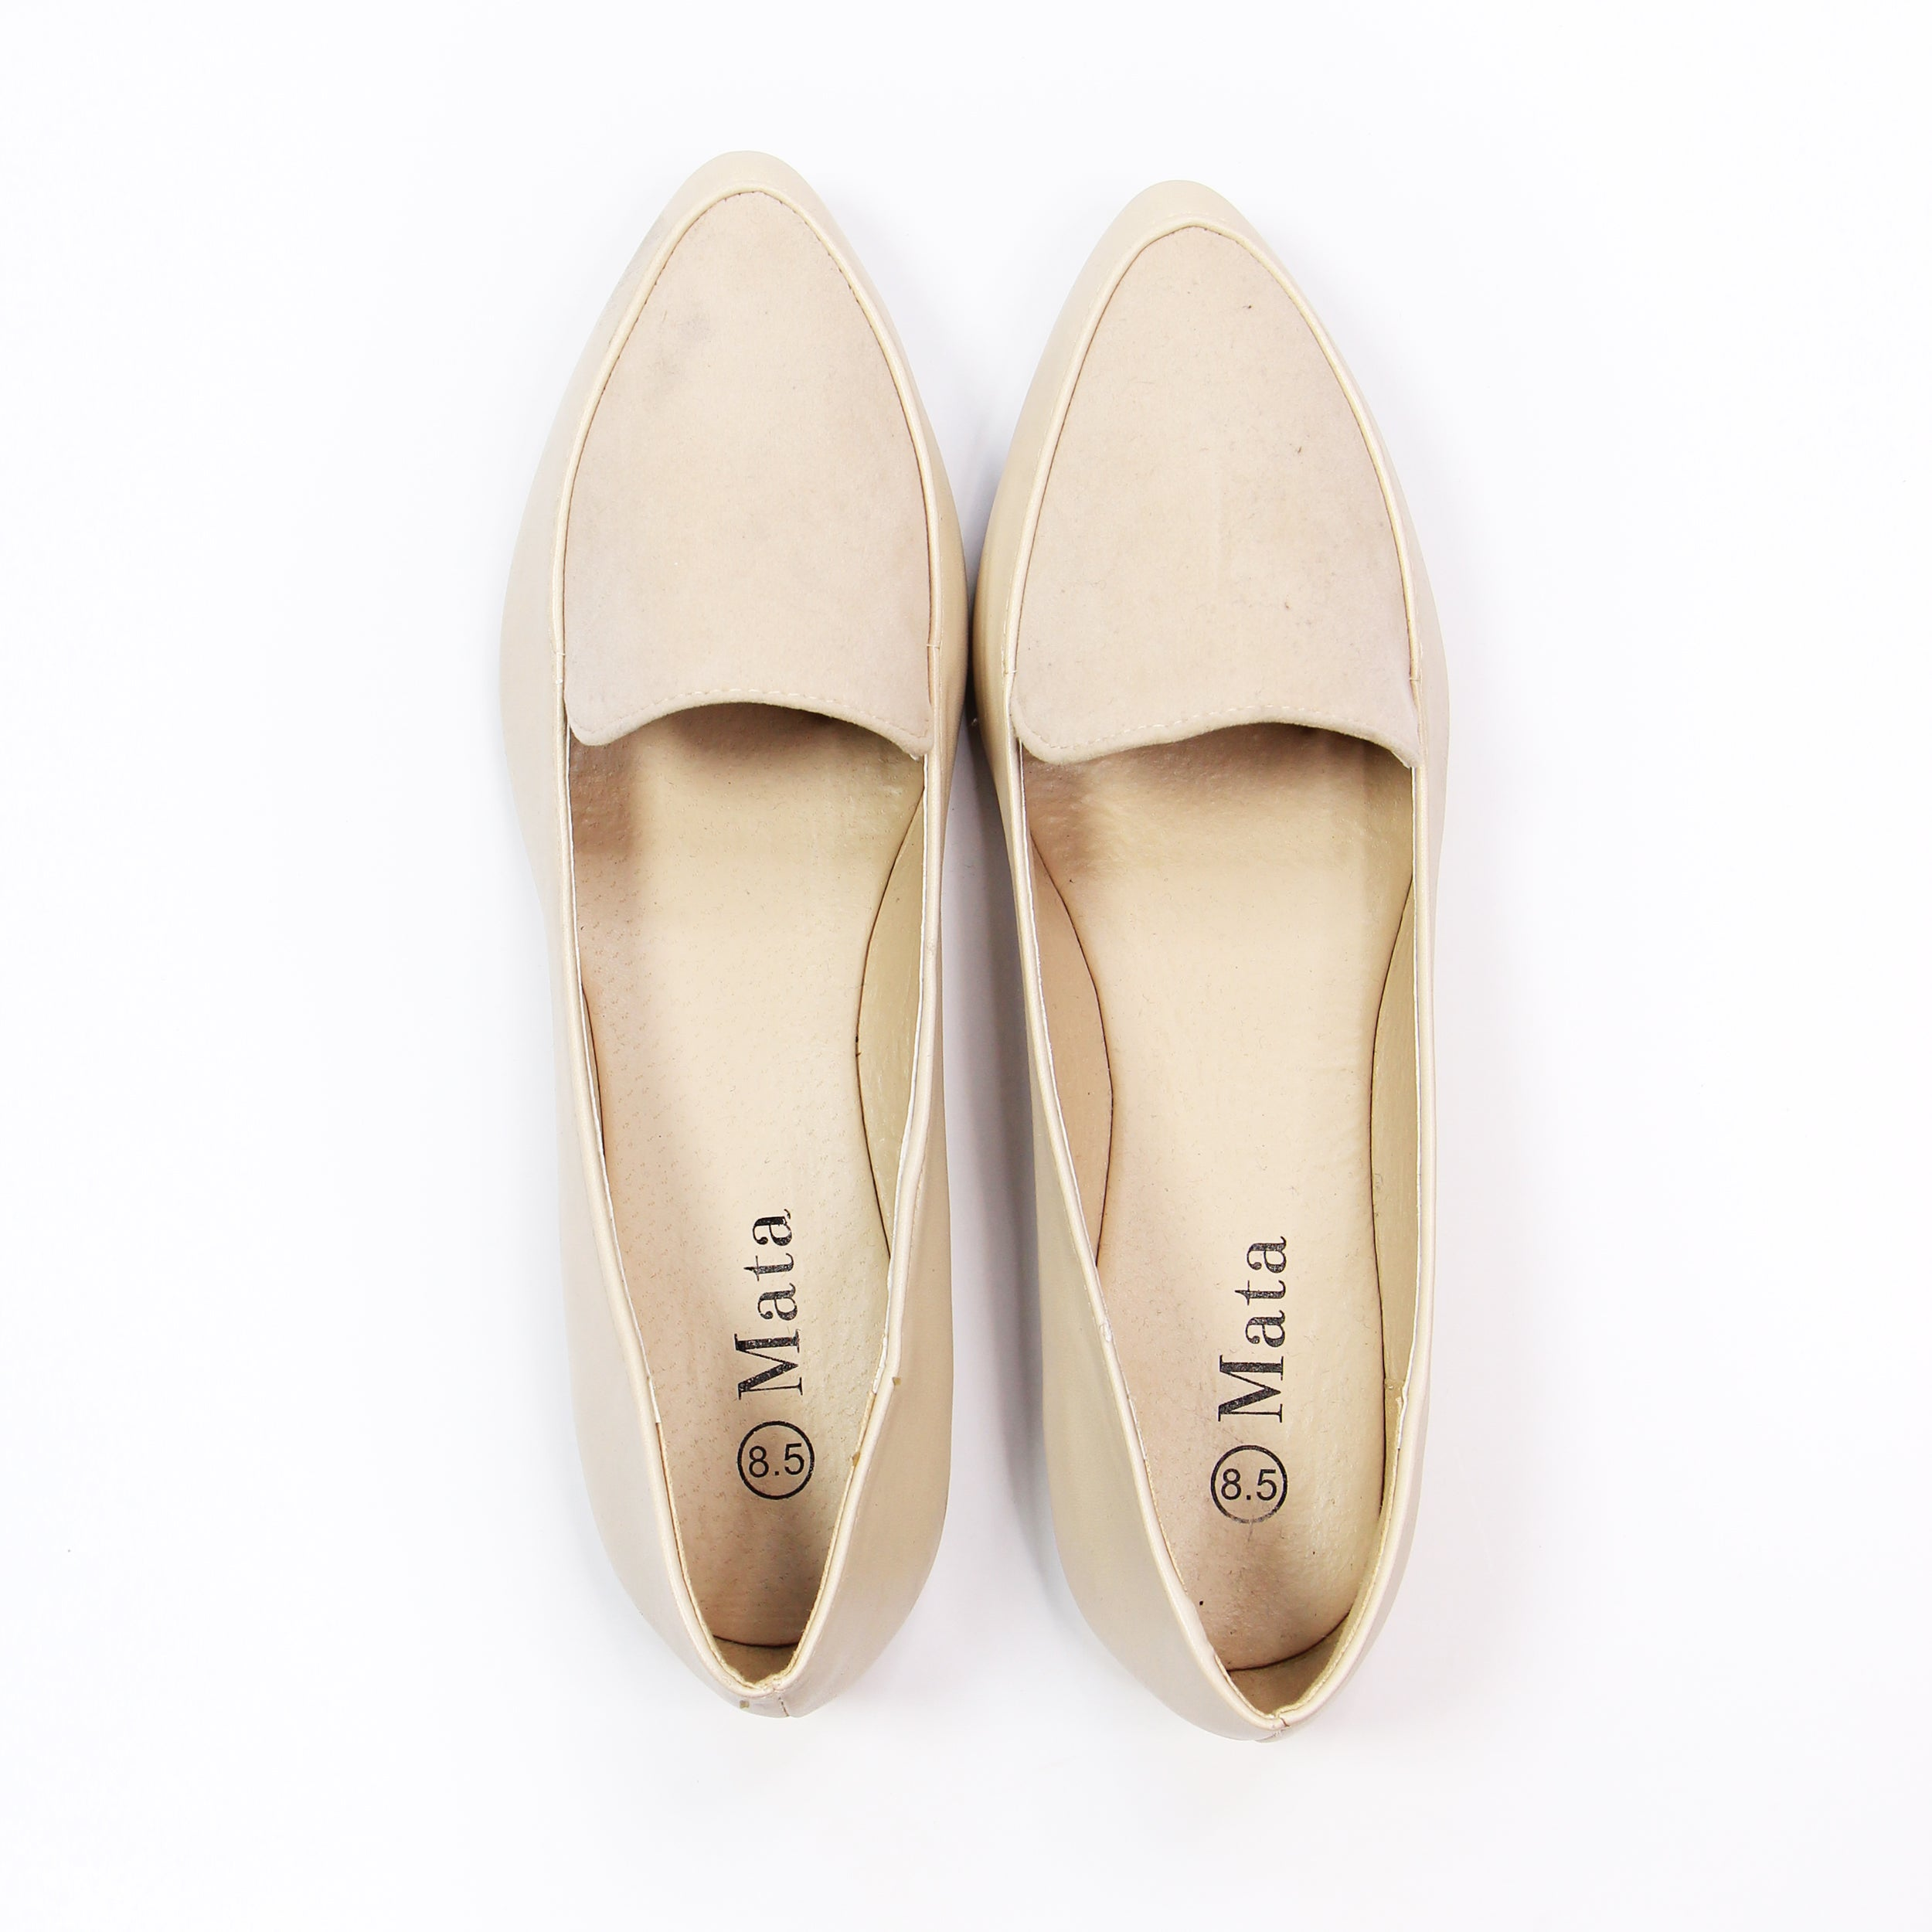 Mata - Cream Loafers - 8.5